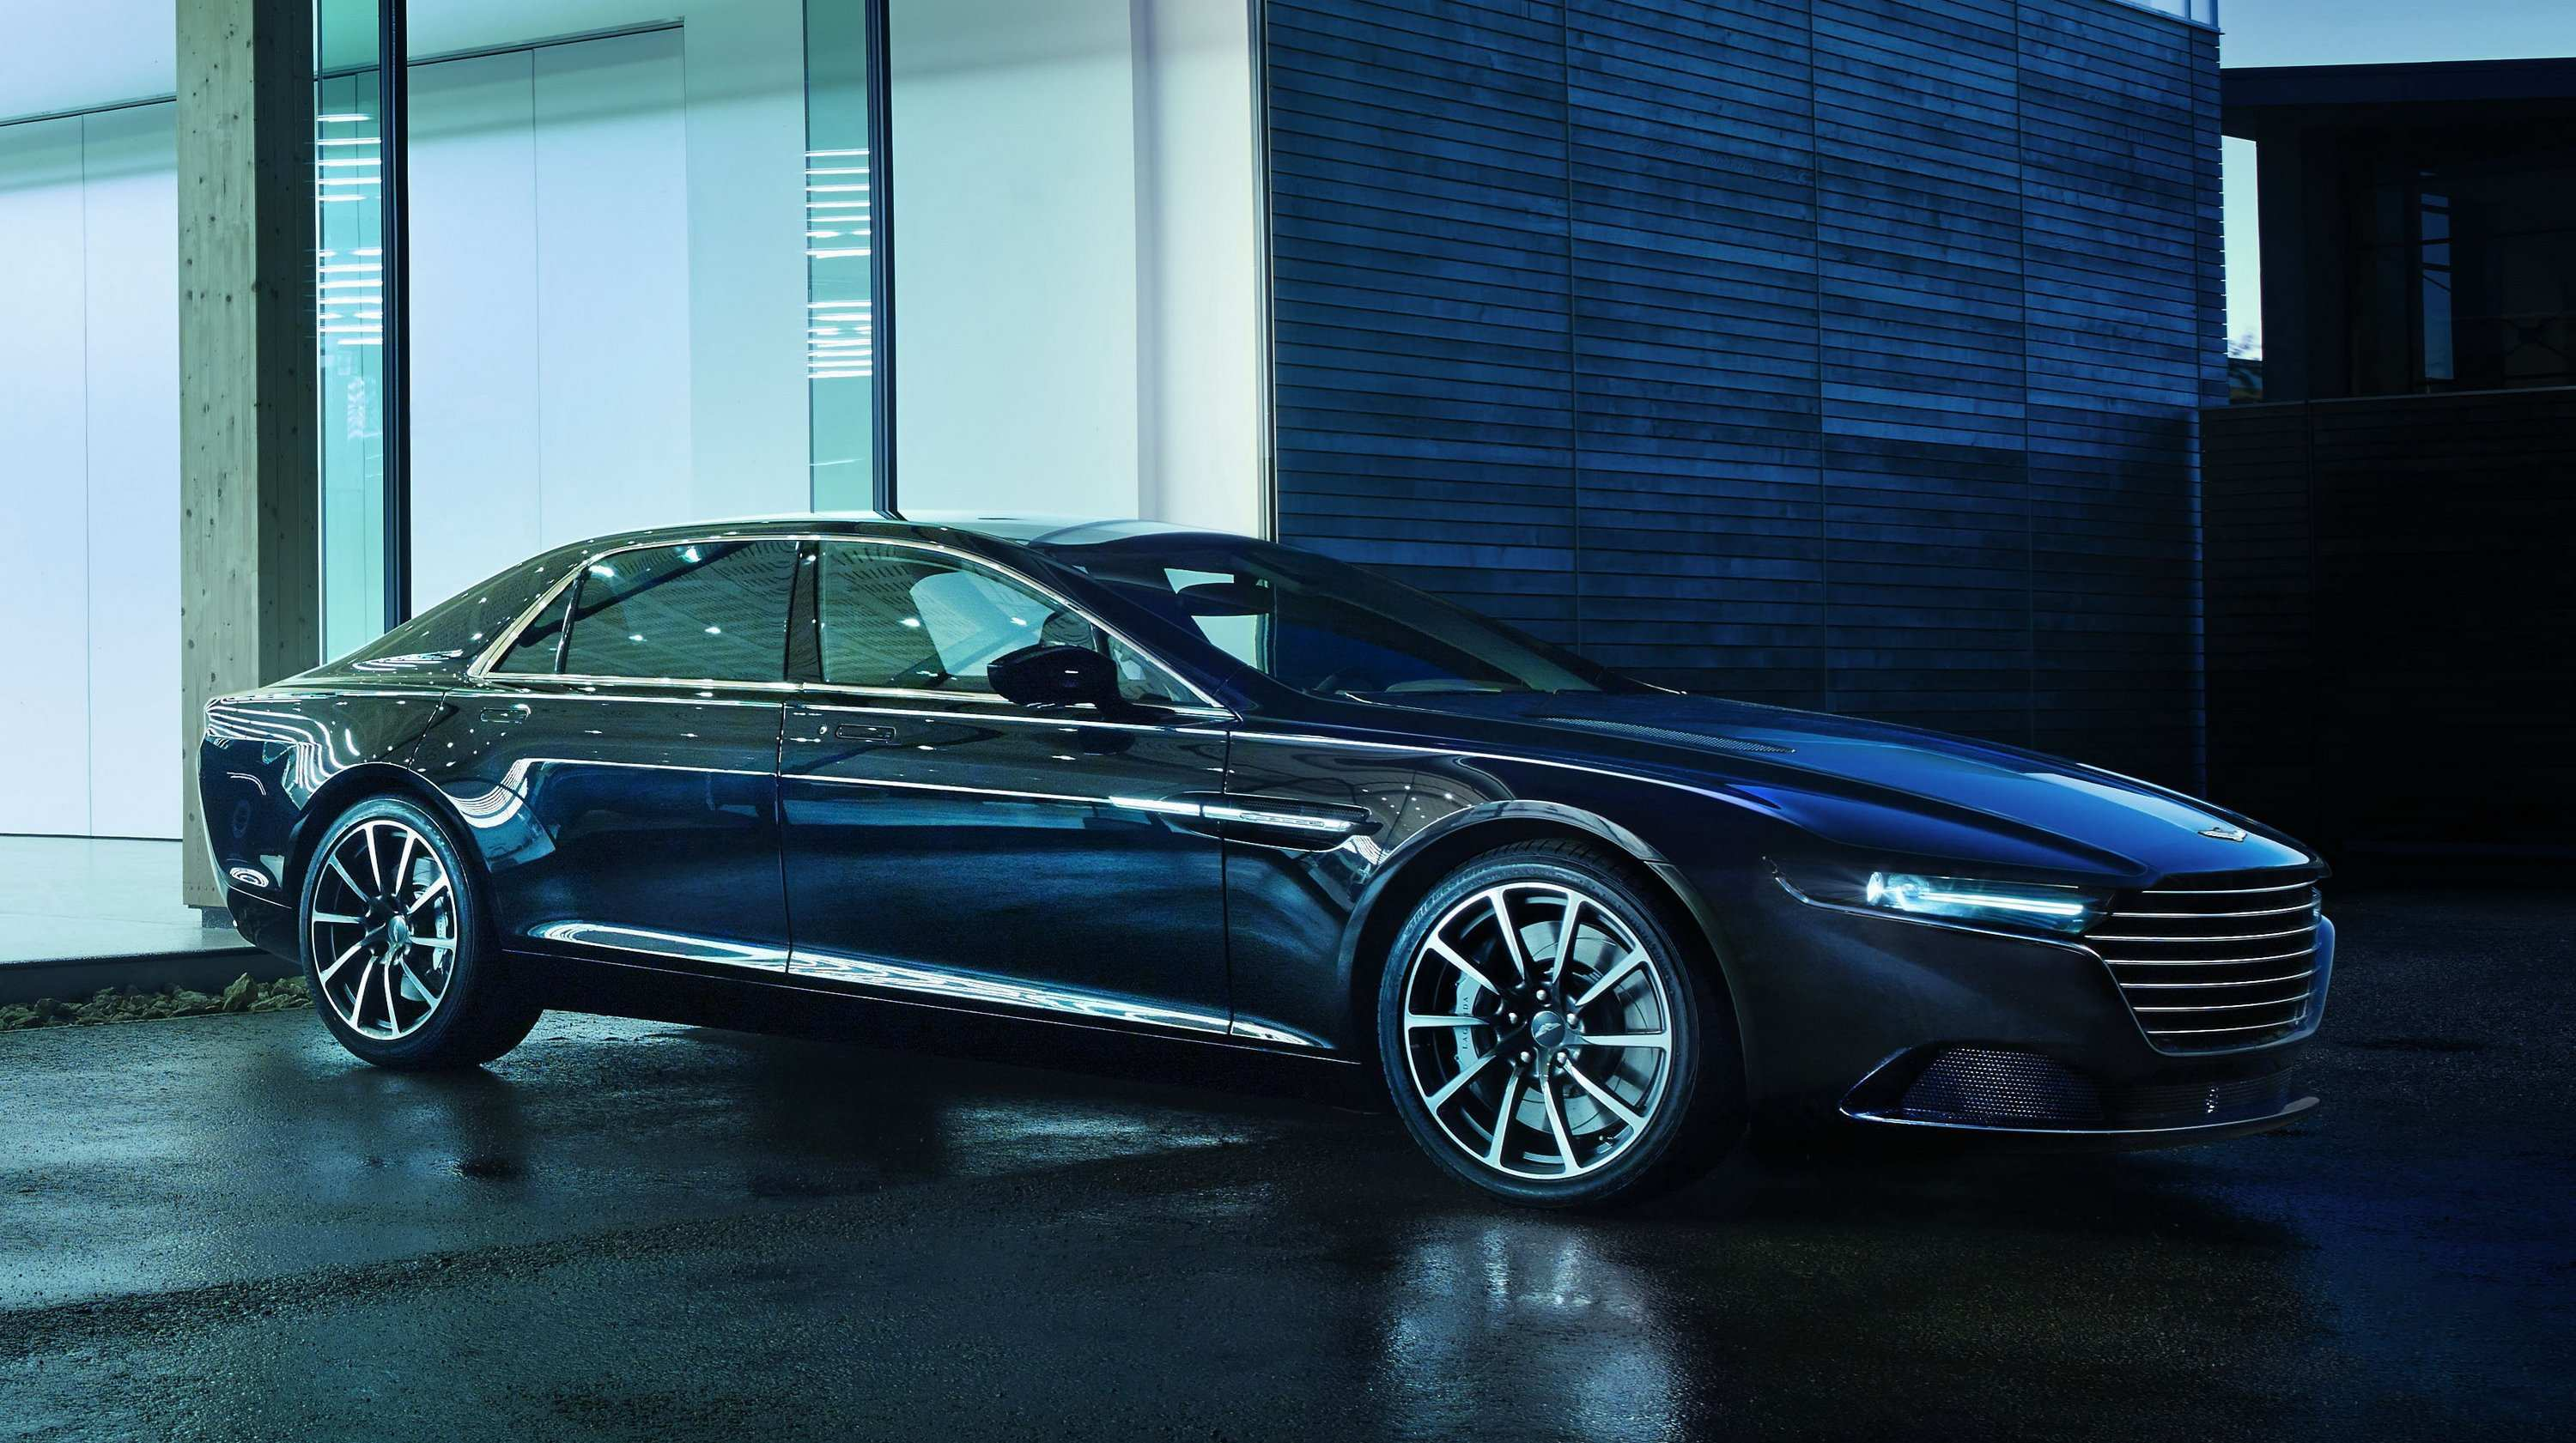 45 Concept of 2020 Aston Martin Lagonda Redesign for 2020 Aston Martin Lagonda